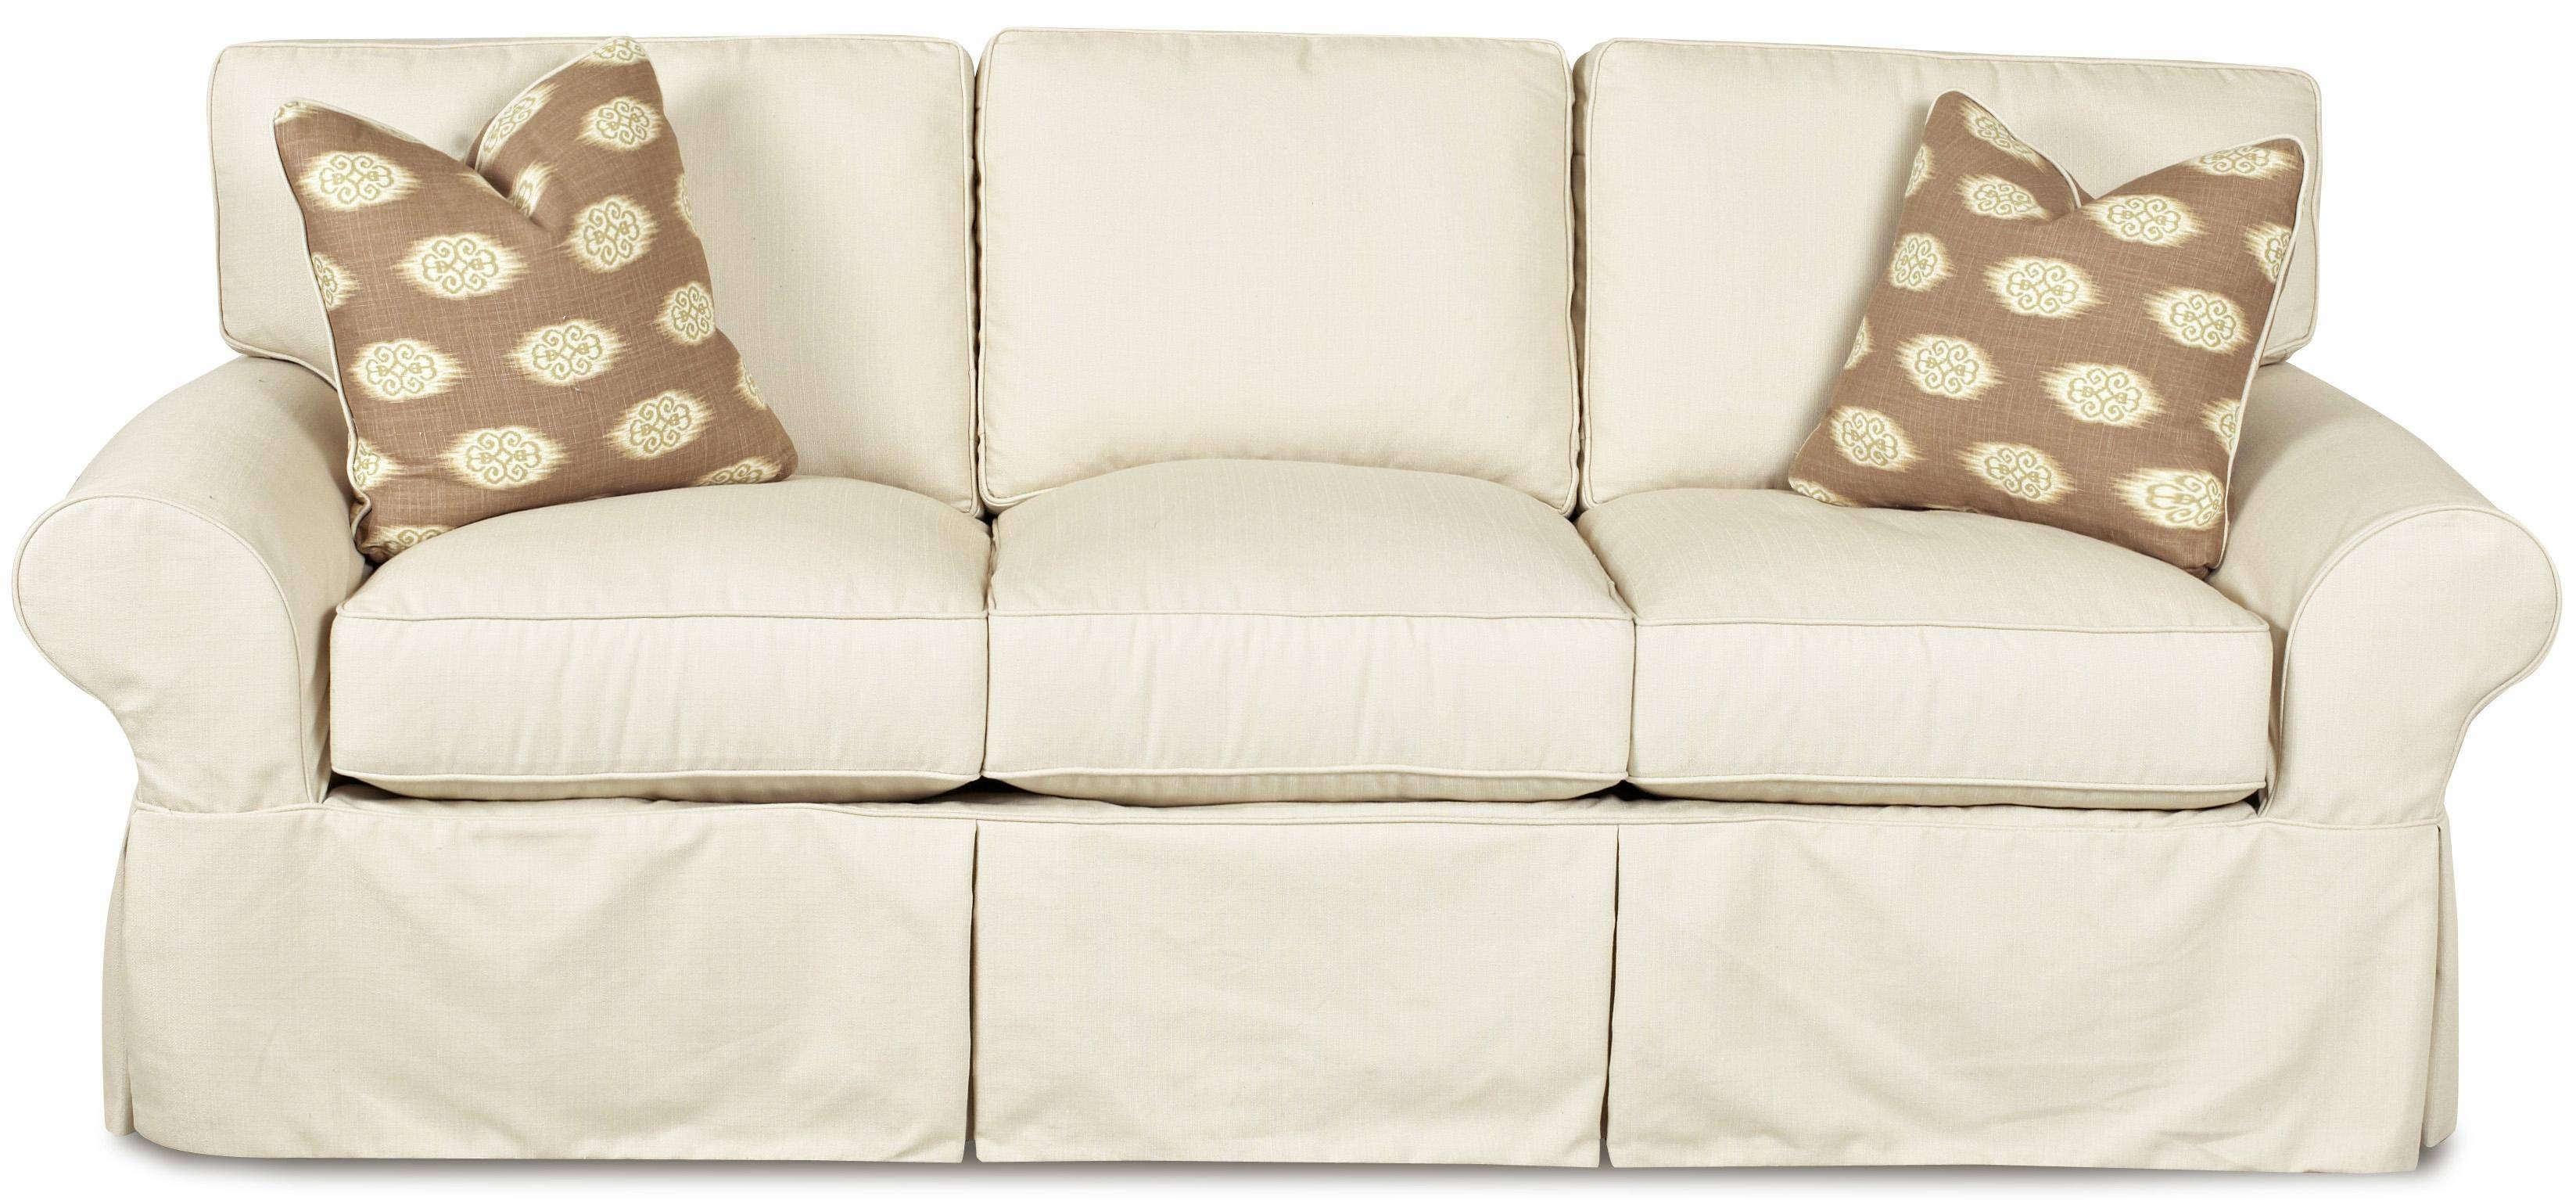 Chair & Sofa: Slipcovered Sofas | Couch Slip Cover | Ottoman with regard to Armless Couch Slipcovers (Image 3 of 15)